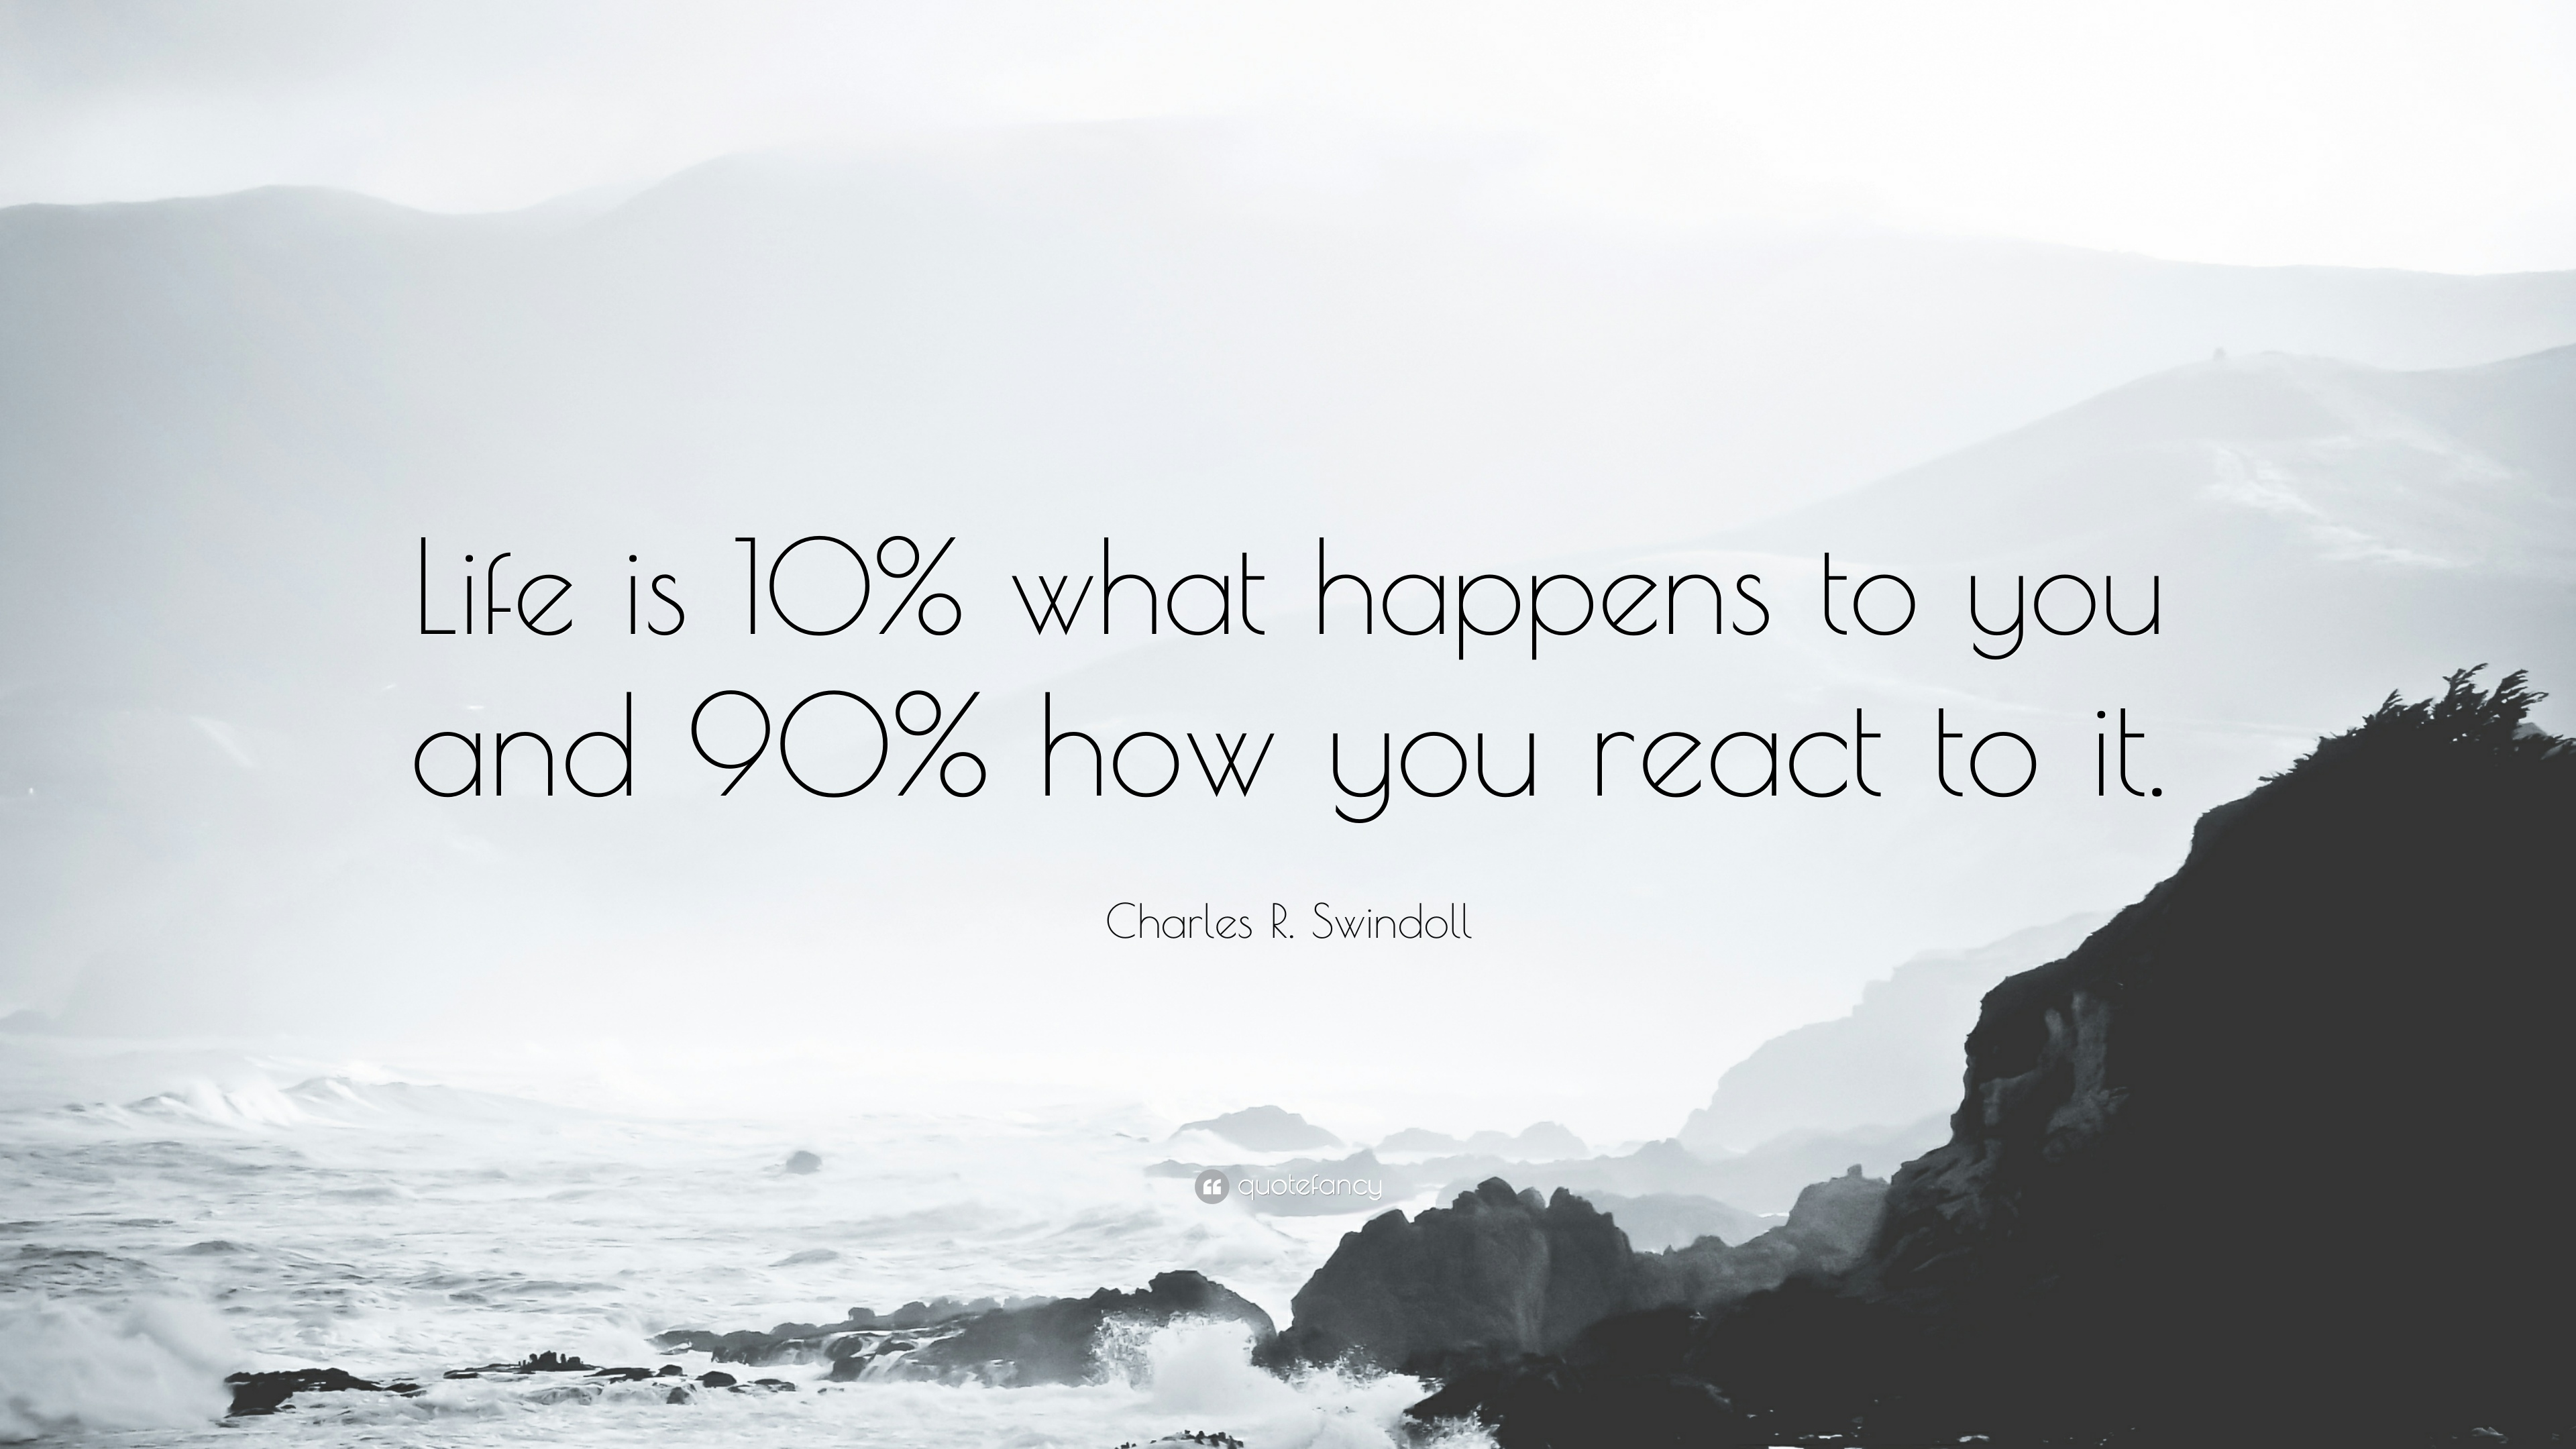 19844-Charles-R-Swindoll-Quote-Life-is-10-what-happens-to-you-and-90-how.jpg